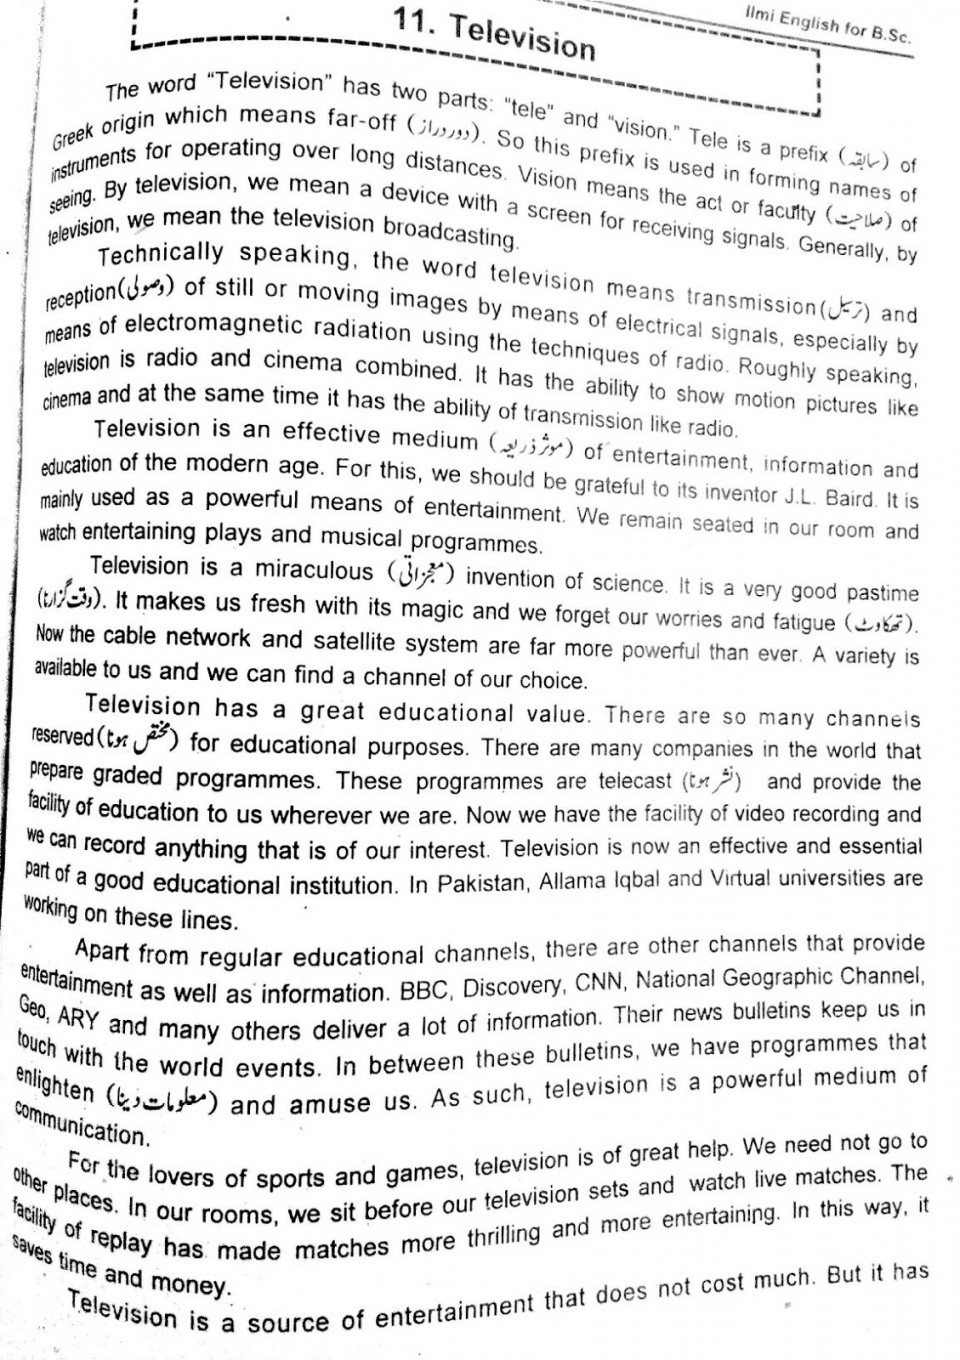 011 Television2b252812529 Essay Example My Favourite Newspaper In Striking English 960